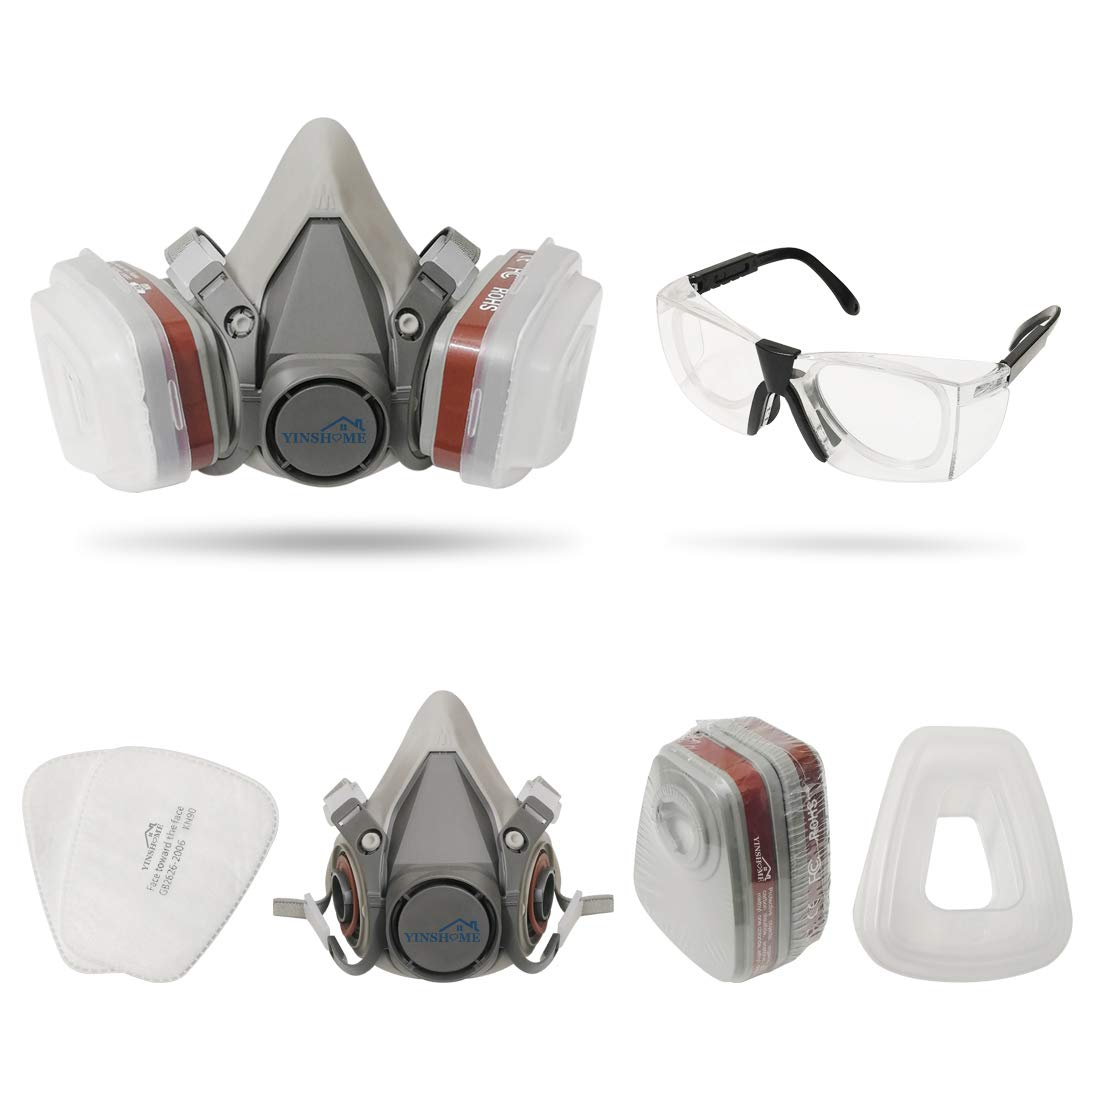 Yinshome Respirator Mask(Plus Safety Glasses)-Gas Mask with Dual Filter Cartridges for Breathing Eye Protection Against Dust,Organic Vapors, Chemicals-Paint Respirator for DIY projects by YinsHome (Image #2)